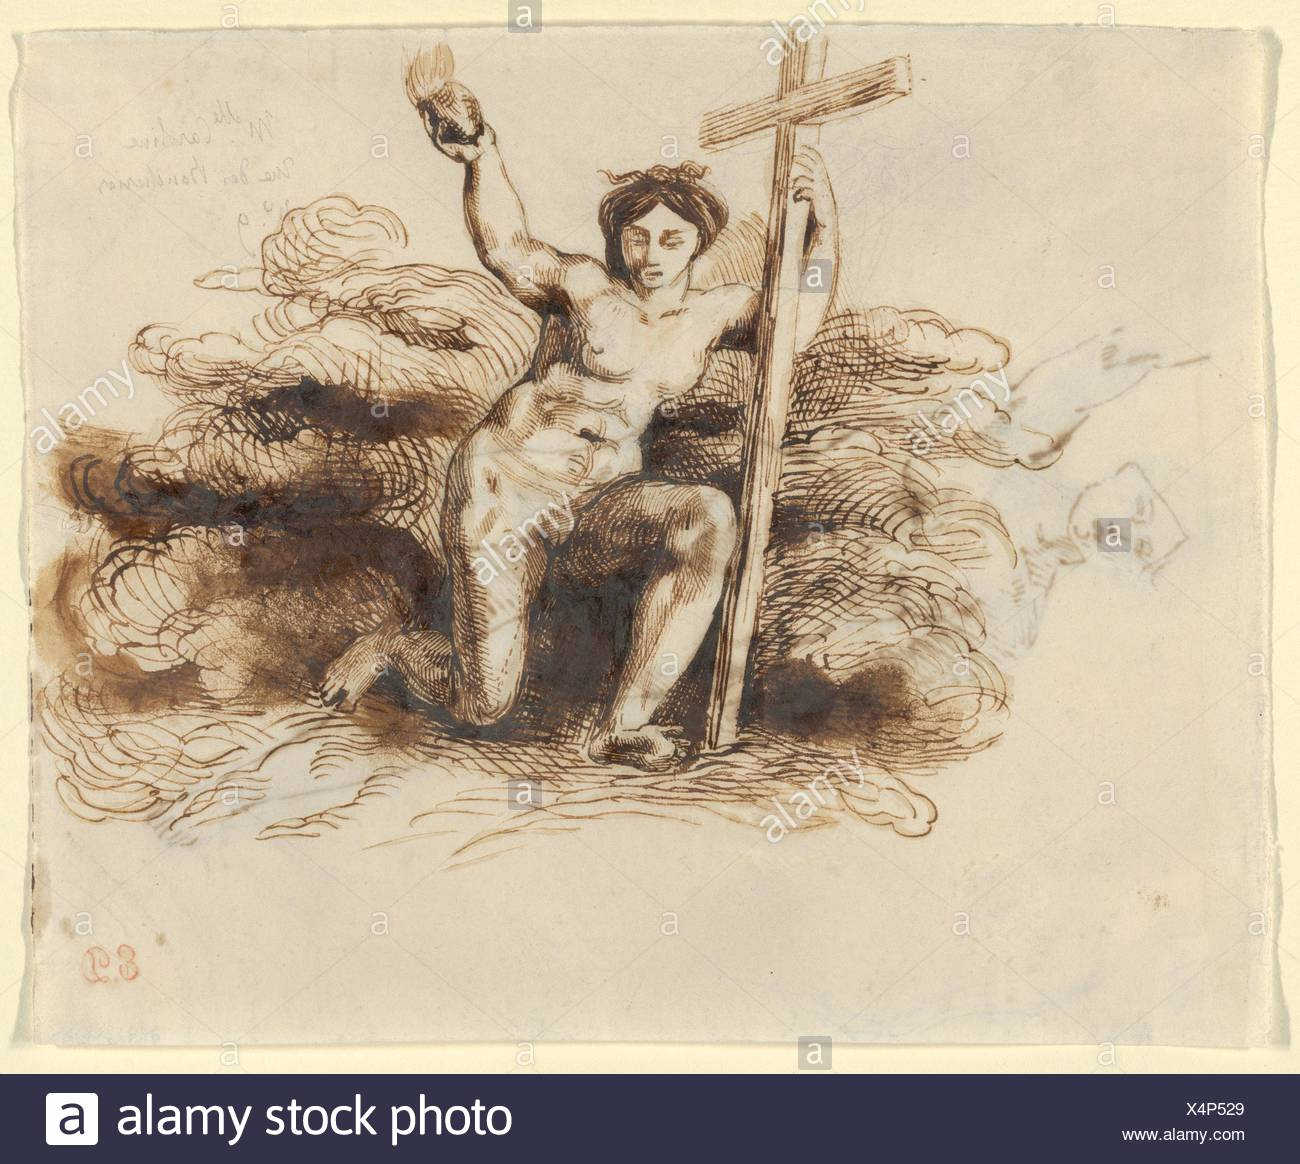 The Figure of Religion, Half-Seated with Right Arm Raised (recto); The Figure of Religion, Kneeling, Holding a Cross and a Flaming Heart (verso). - Stock Image